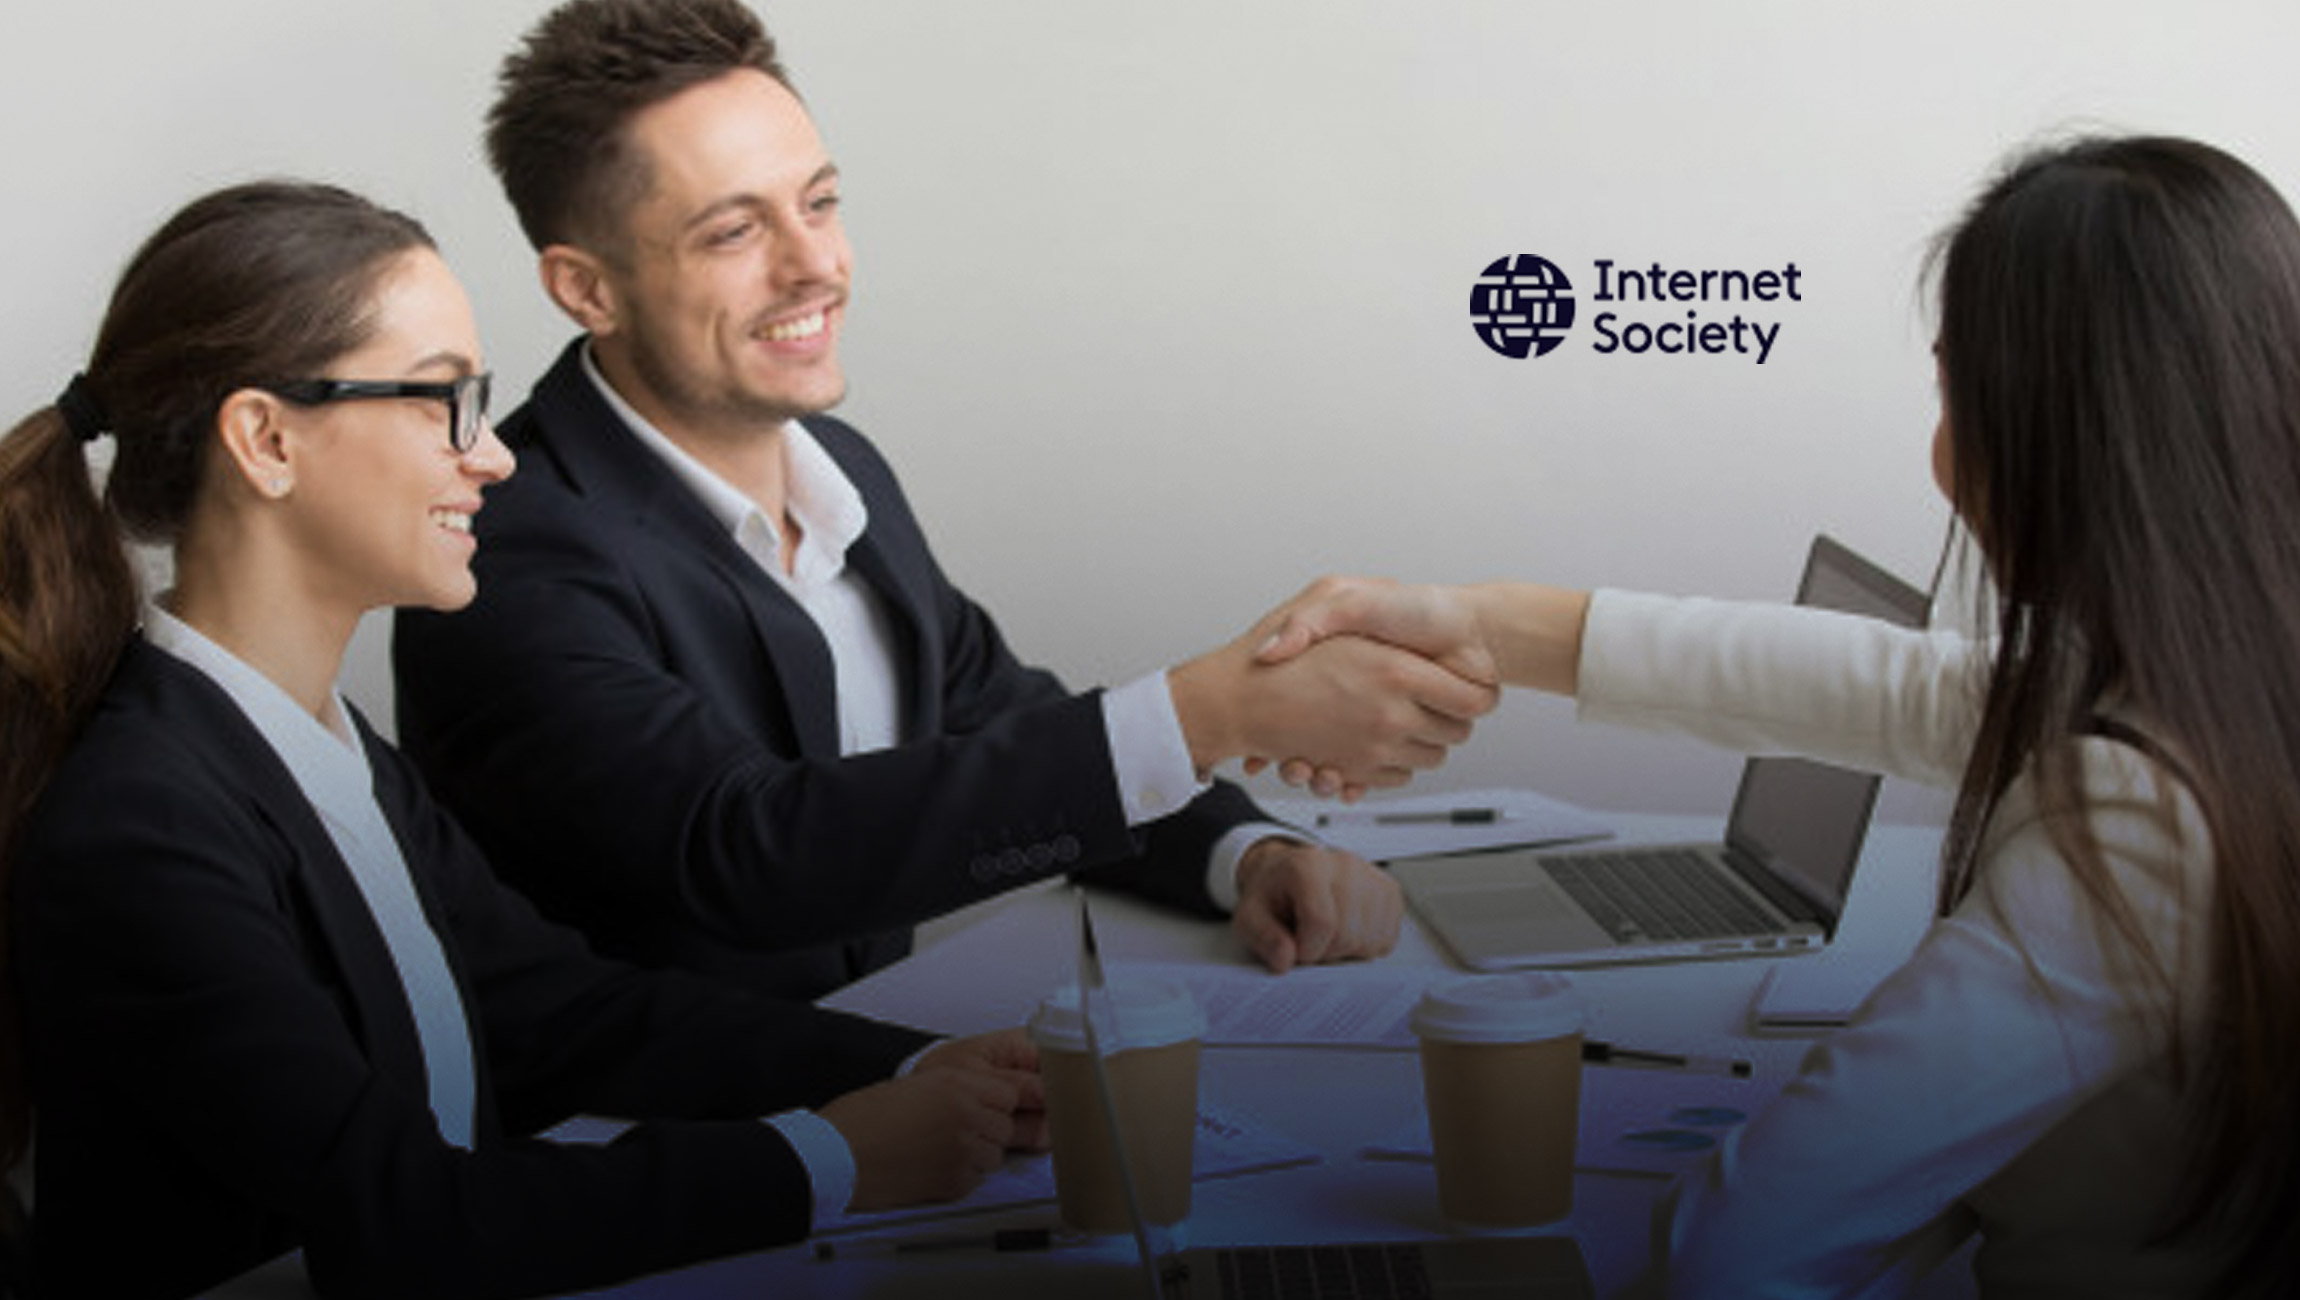 The-Internet-Society-and-IETF-Announce-New-Strategic-Agreement-to-Support-Ongoing-Work-on-Open-Standards